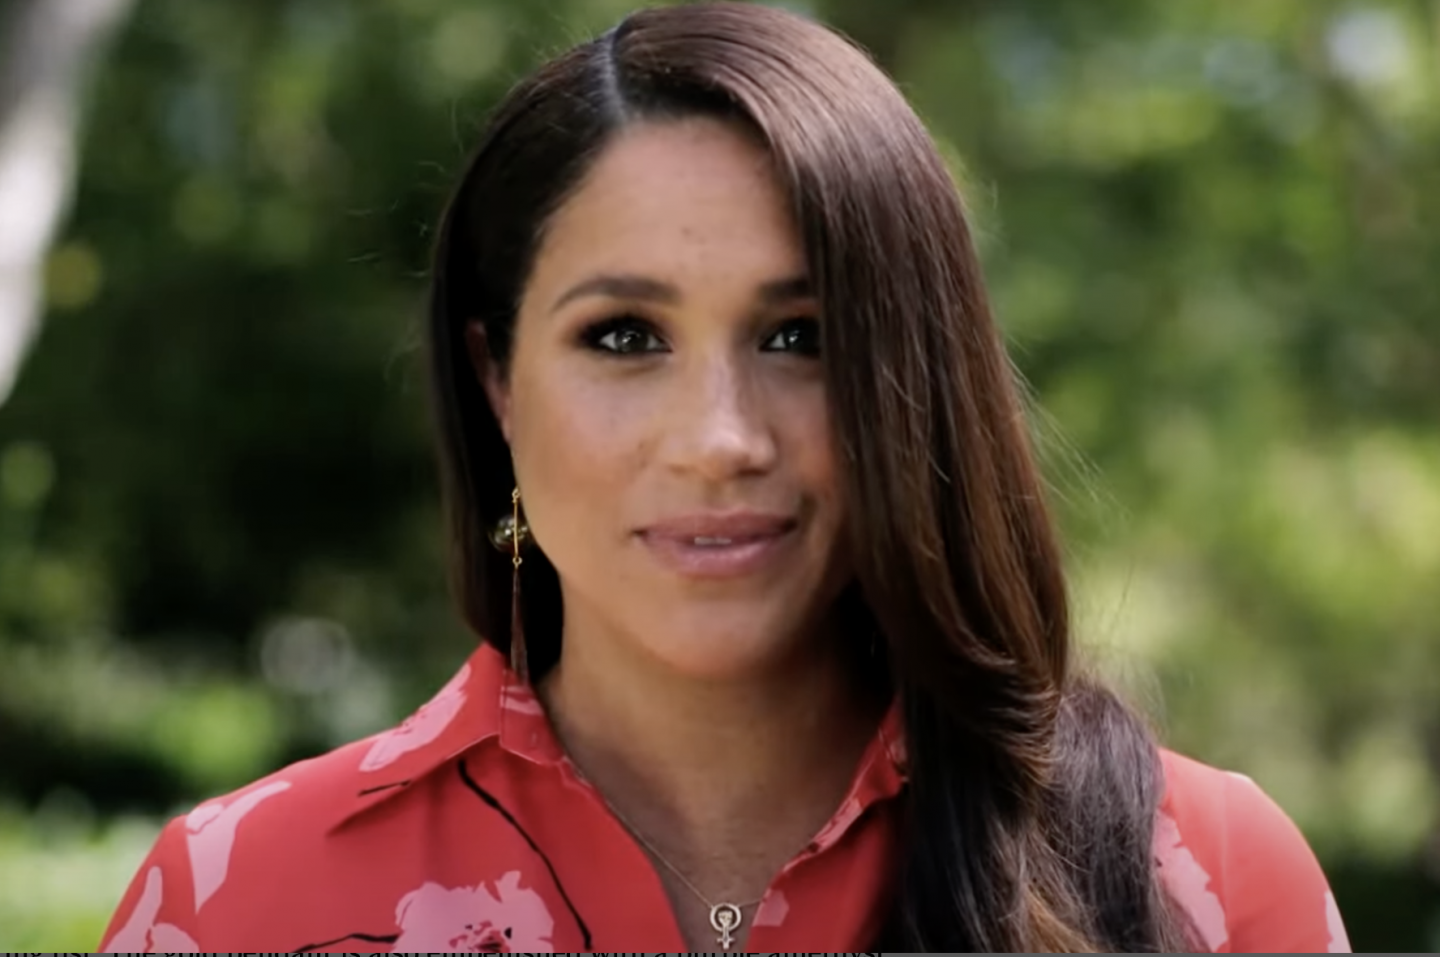 meghan markle wore this woman power necklace